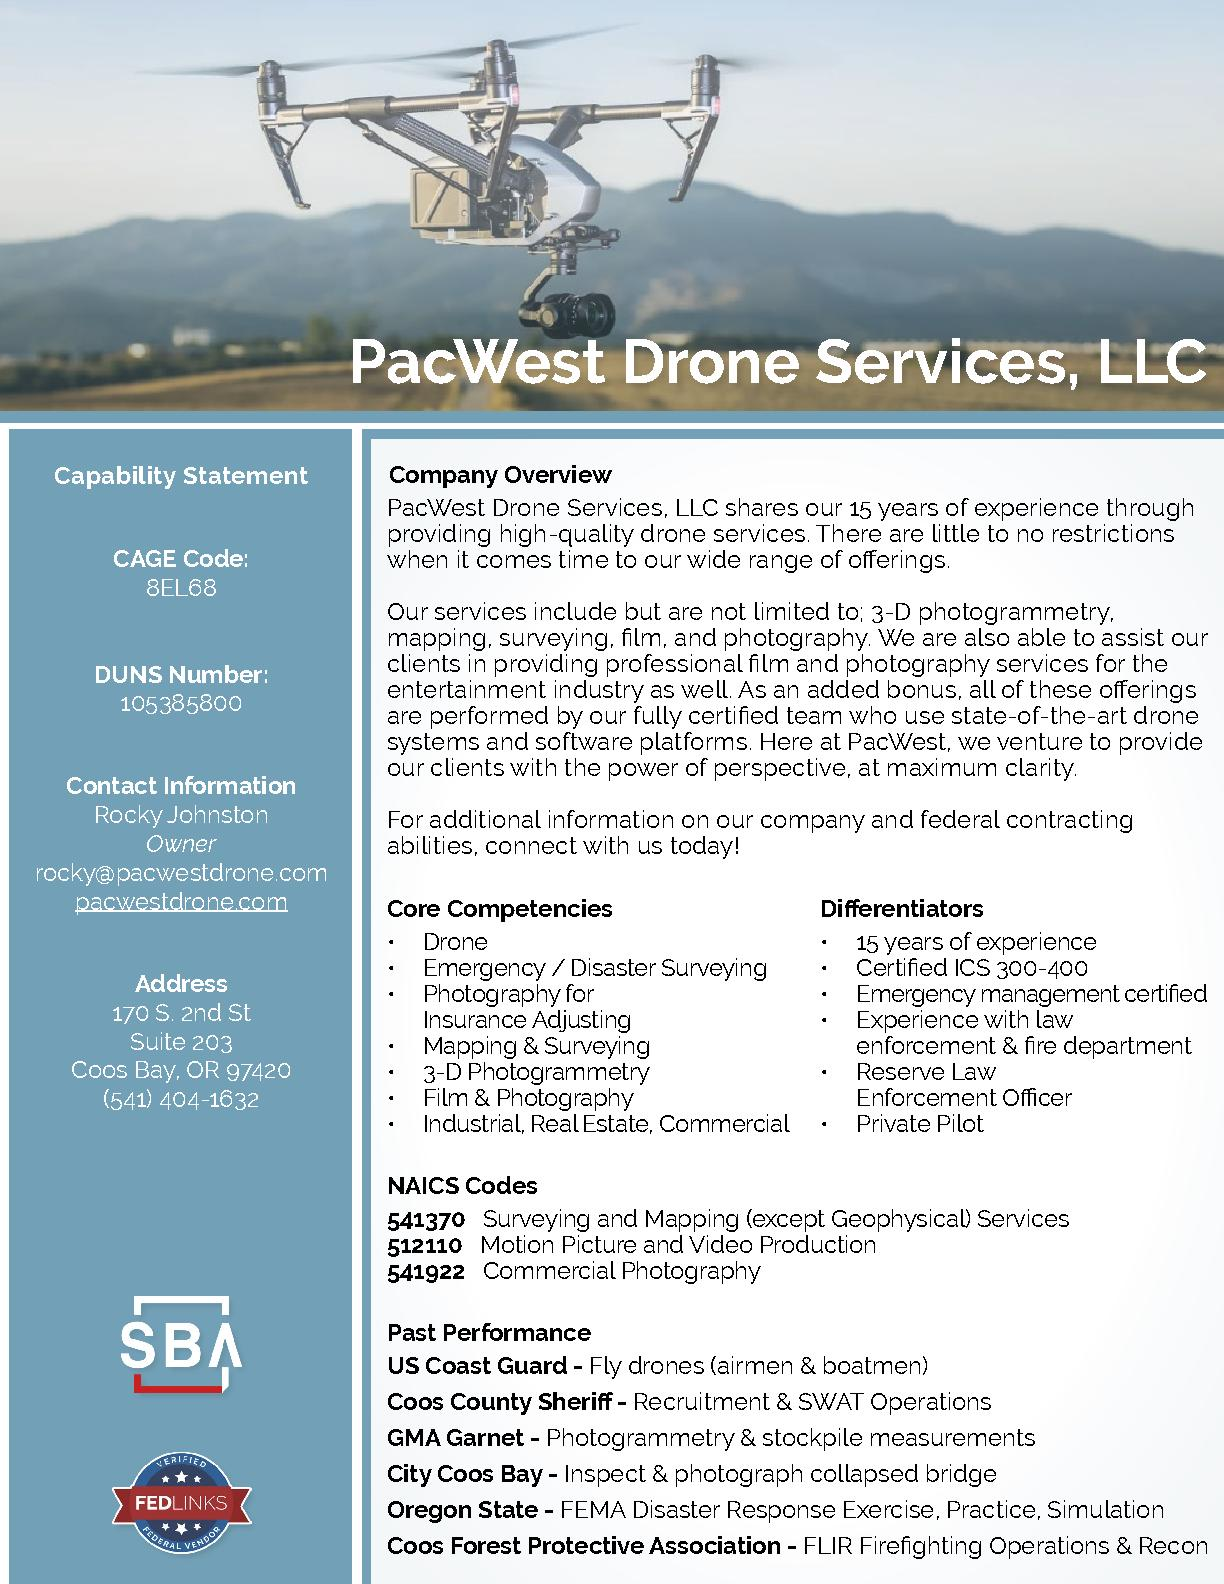 Pacwest drone services llc capability statement